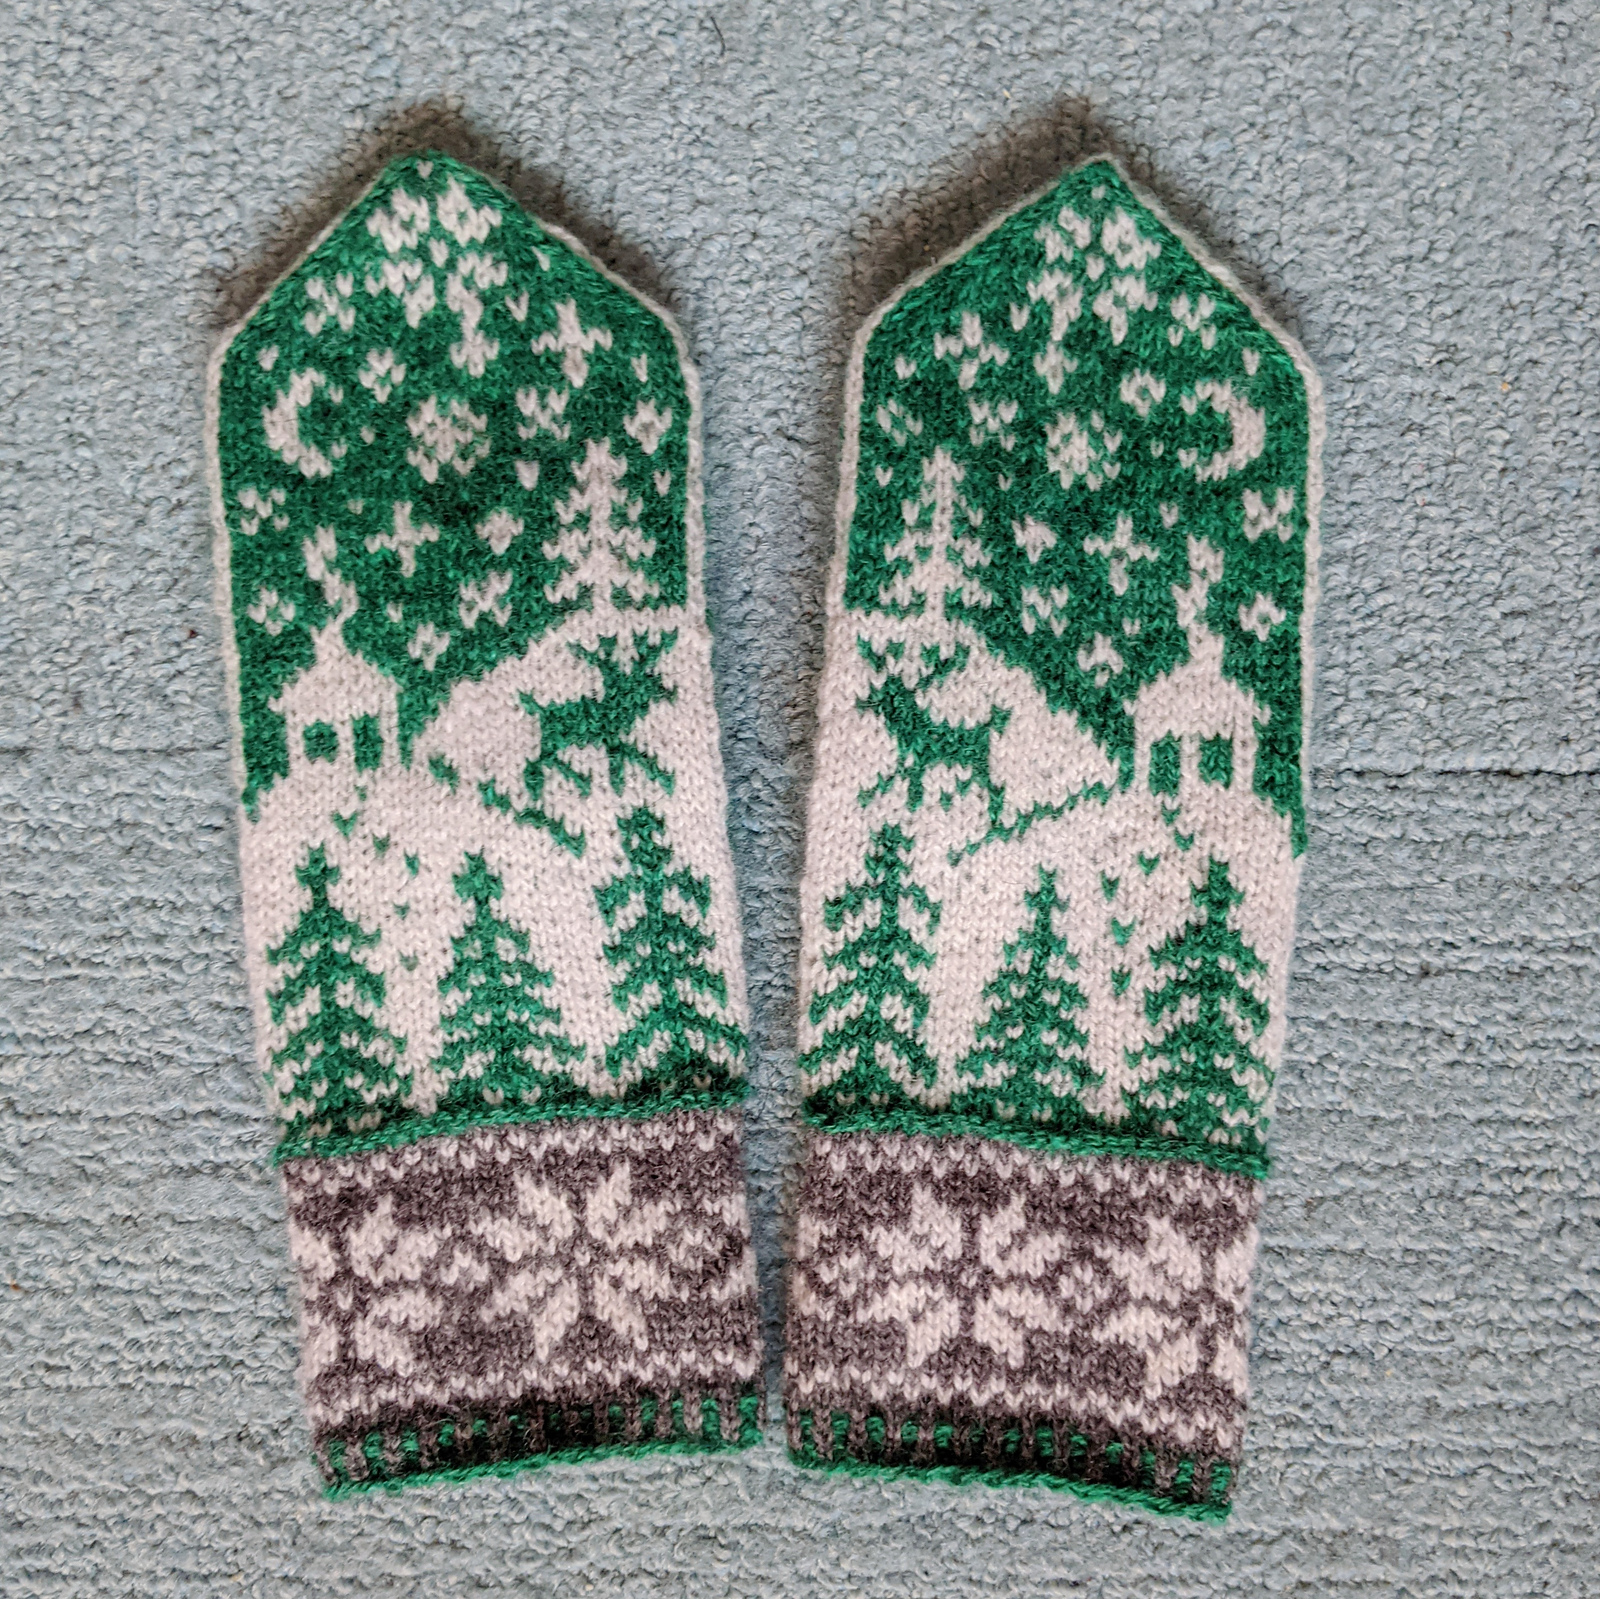 A pair of mittens in green, white, and grey lays on a carpet. The mittens feature a wintry scene with trees, falling snow, a little house, and a reindeer.